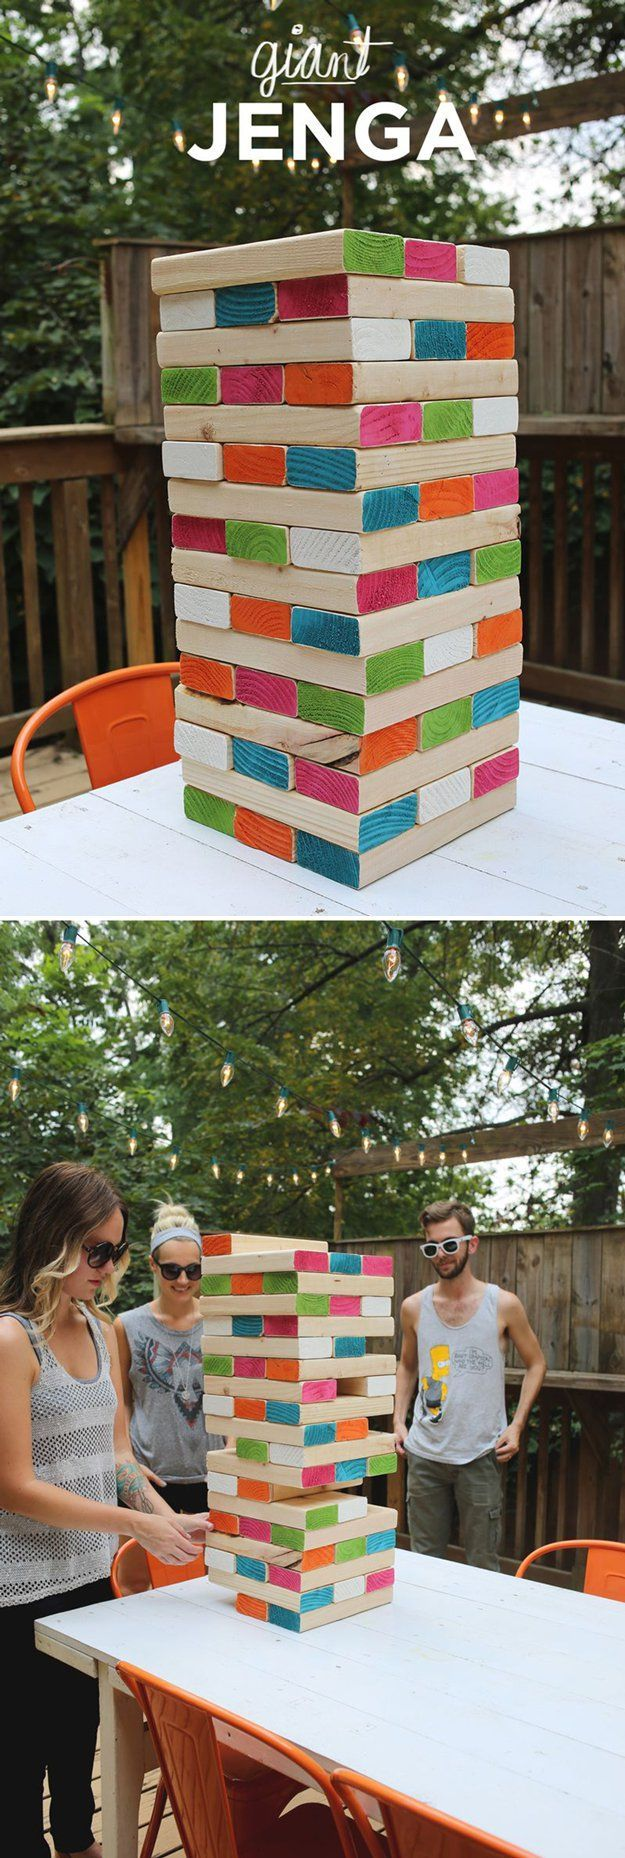 Fun and Easy DIY Outdoor Family Game Crafts | Giant Jenga by DIY Ready at http://diyready.com/15-diy-outdoor-family-games/